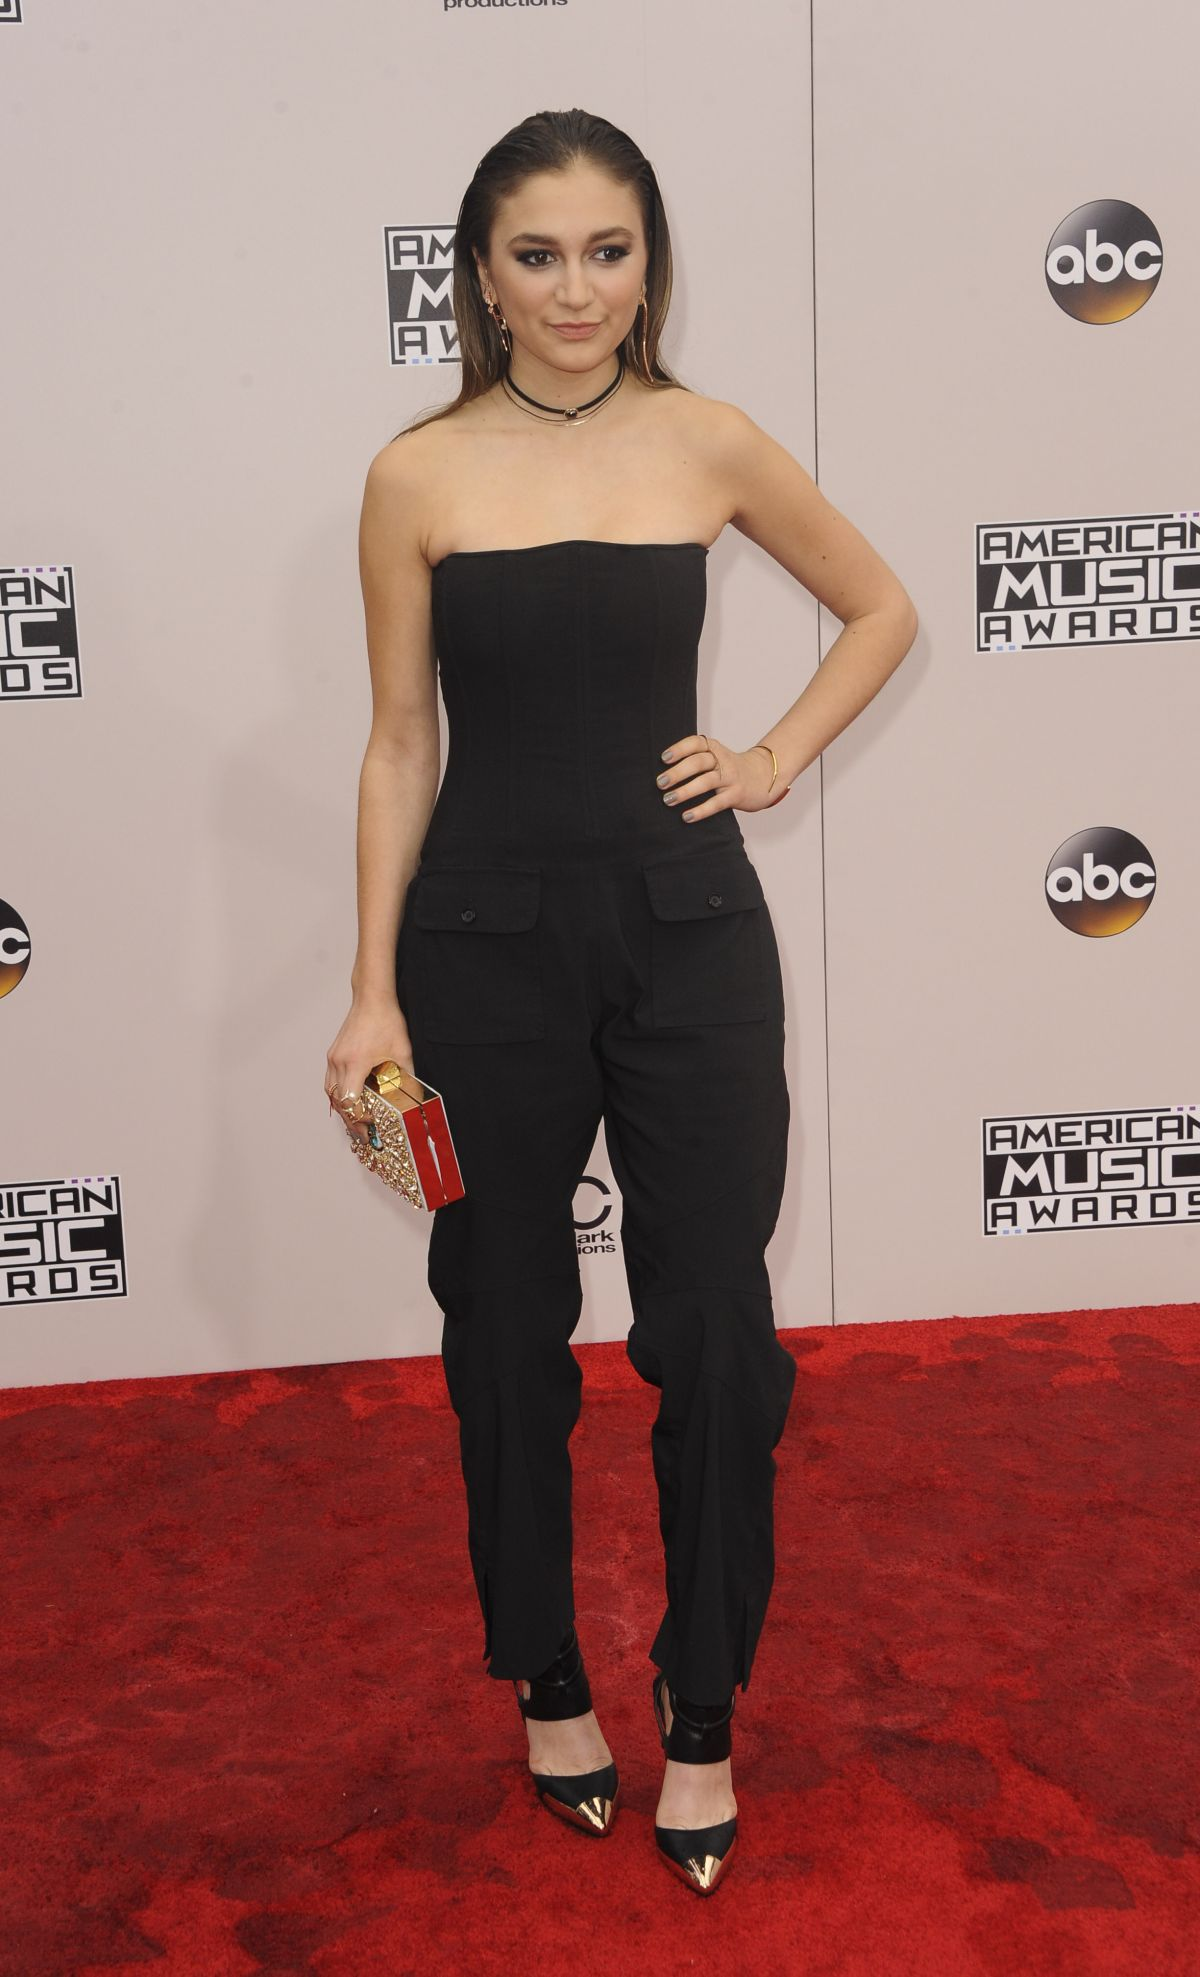 GRACE TANDON at 2016 American Music Awards at The Microsoft Theater in Los Angeles 11/20/2016